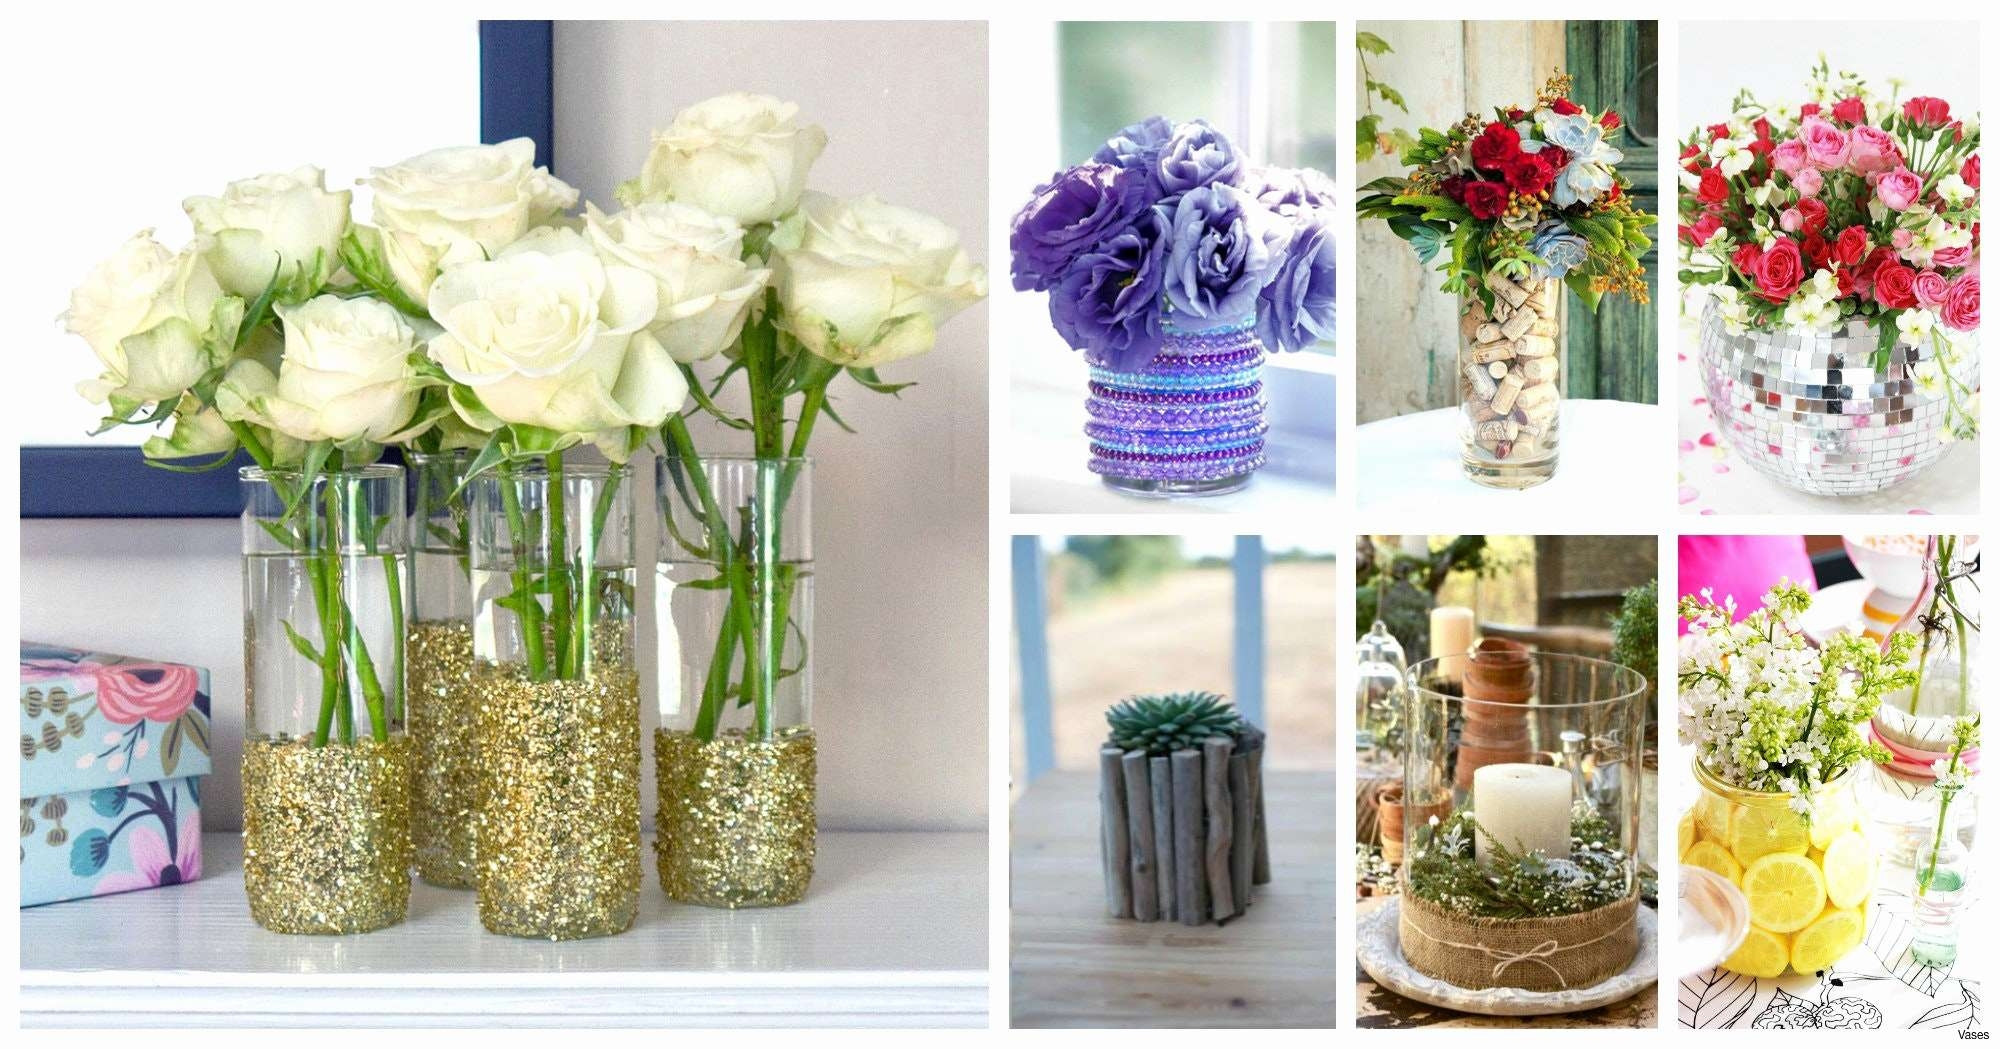 vase decoration ideas of cheap decorating ideas for wedding reception tables dsc h vases for cheap decorating ideas for wedding reception tables dsc h vases square centerpiece dsc i 0d cheap